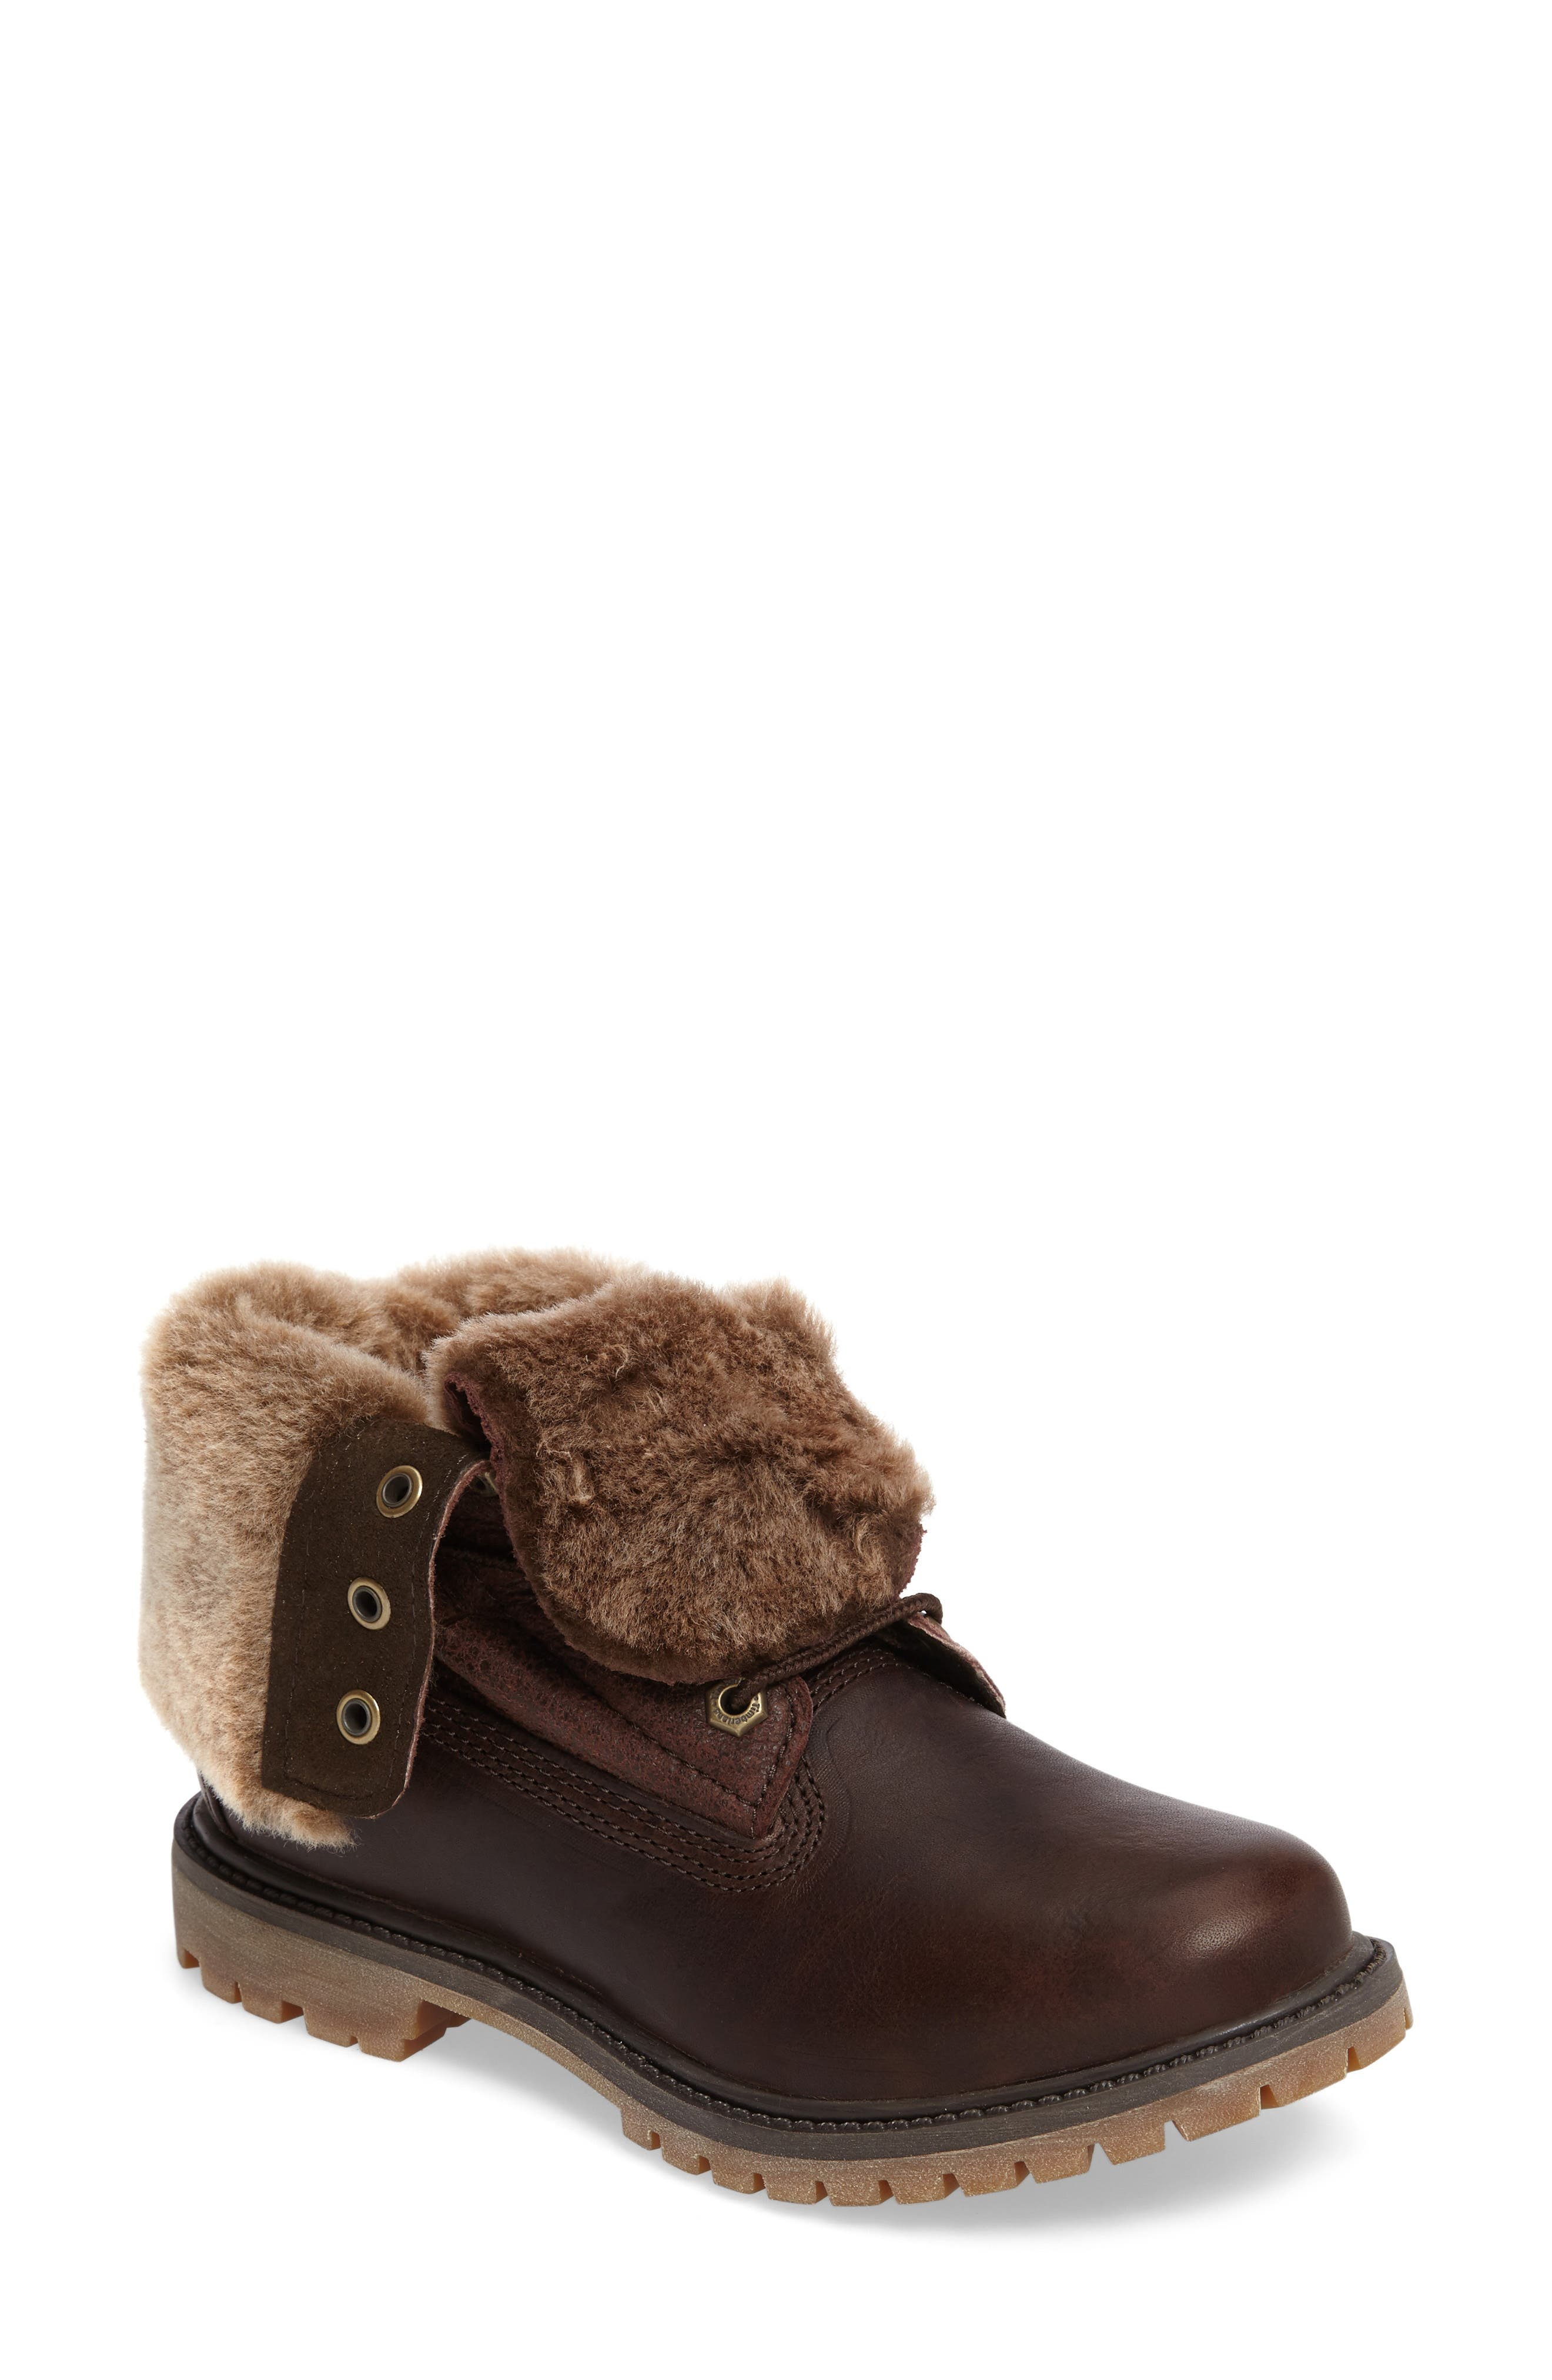 Main Image - Timberland Authentic Water Resistant Genuine Shearling Boot (Women)